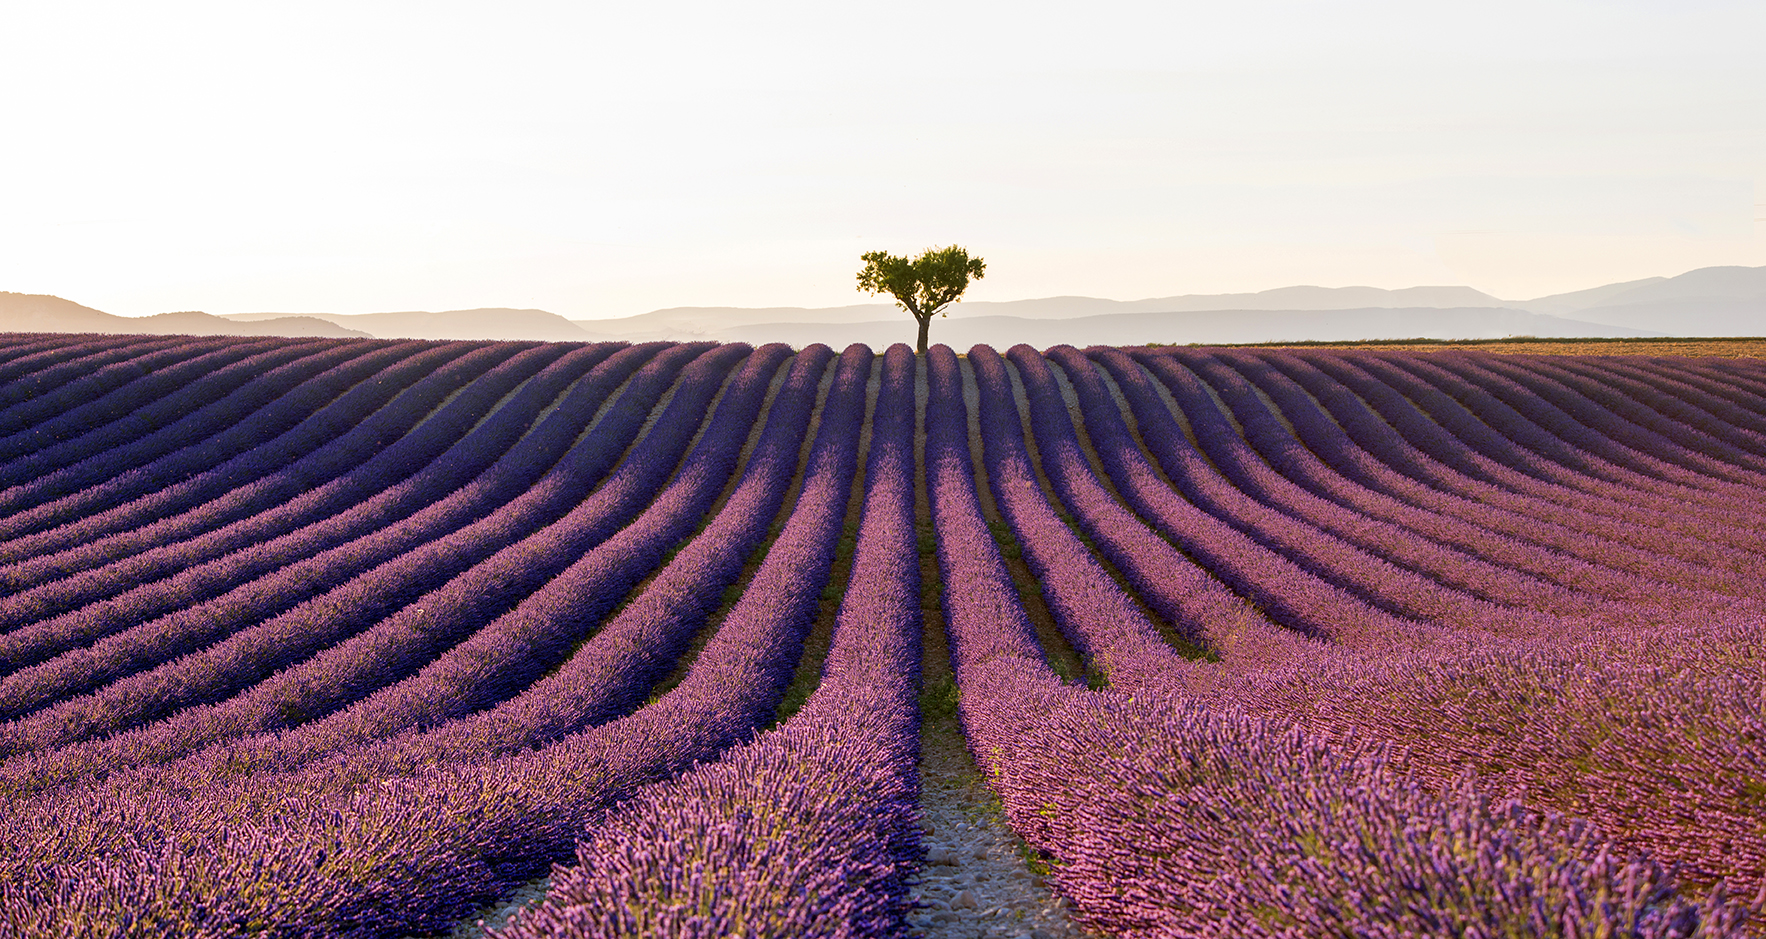 A lavender field in France, row upon row of lavender plants in flower. The composition is symmetrical, with a lone tree on the mid-point of the horizon of the field. Taken by Tracey Whitefoot.